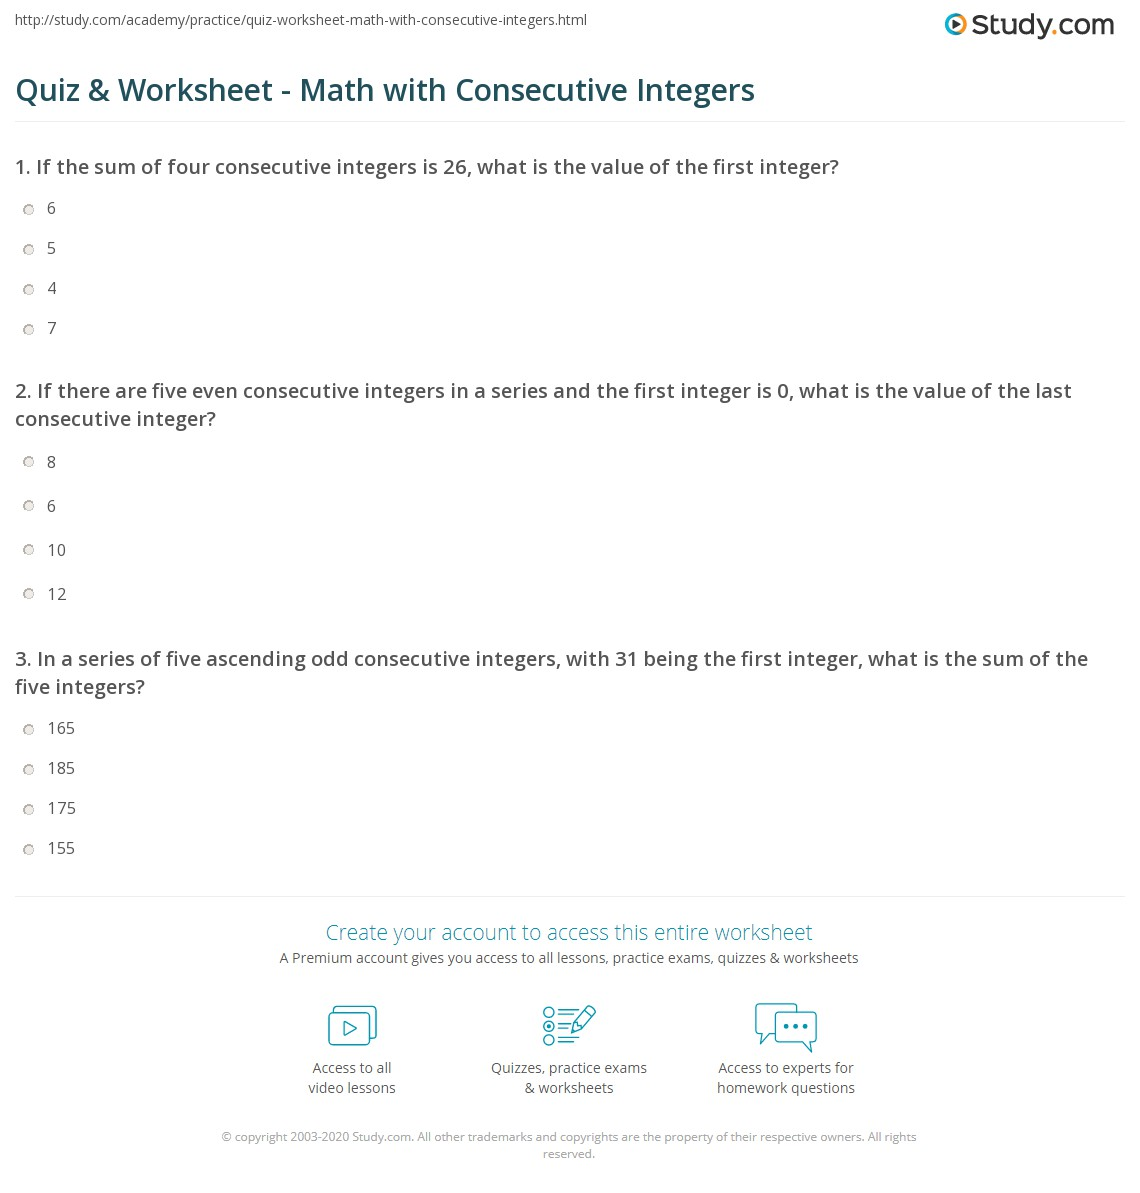 Quiz & Worksheet - Math with Consecutive Integers | Study.com